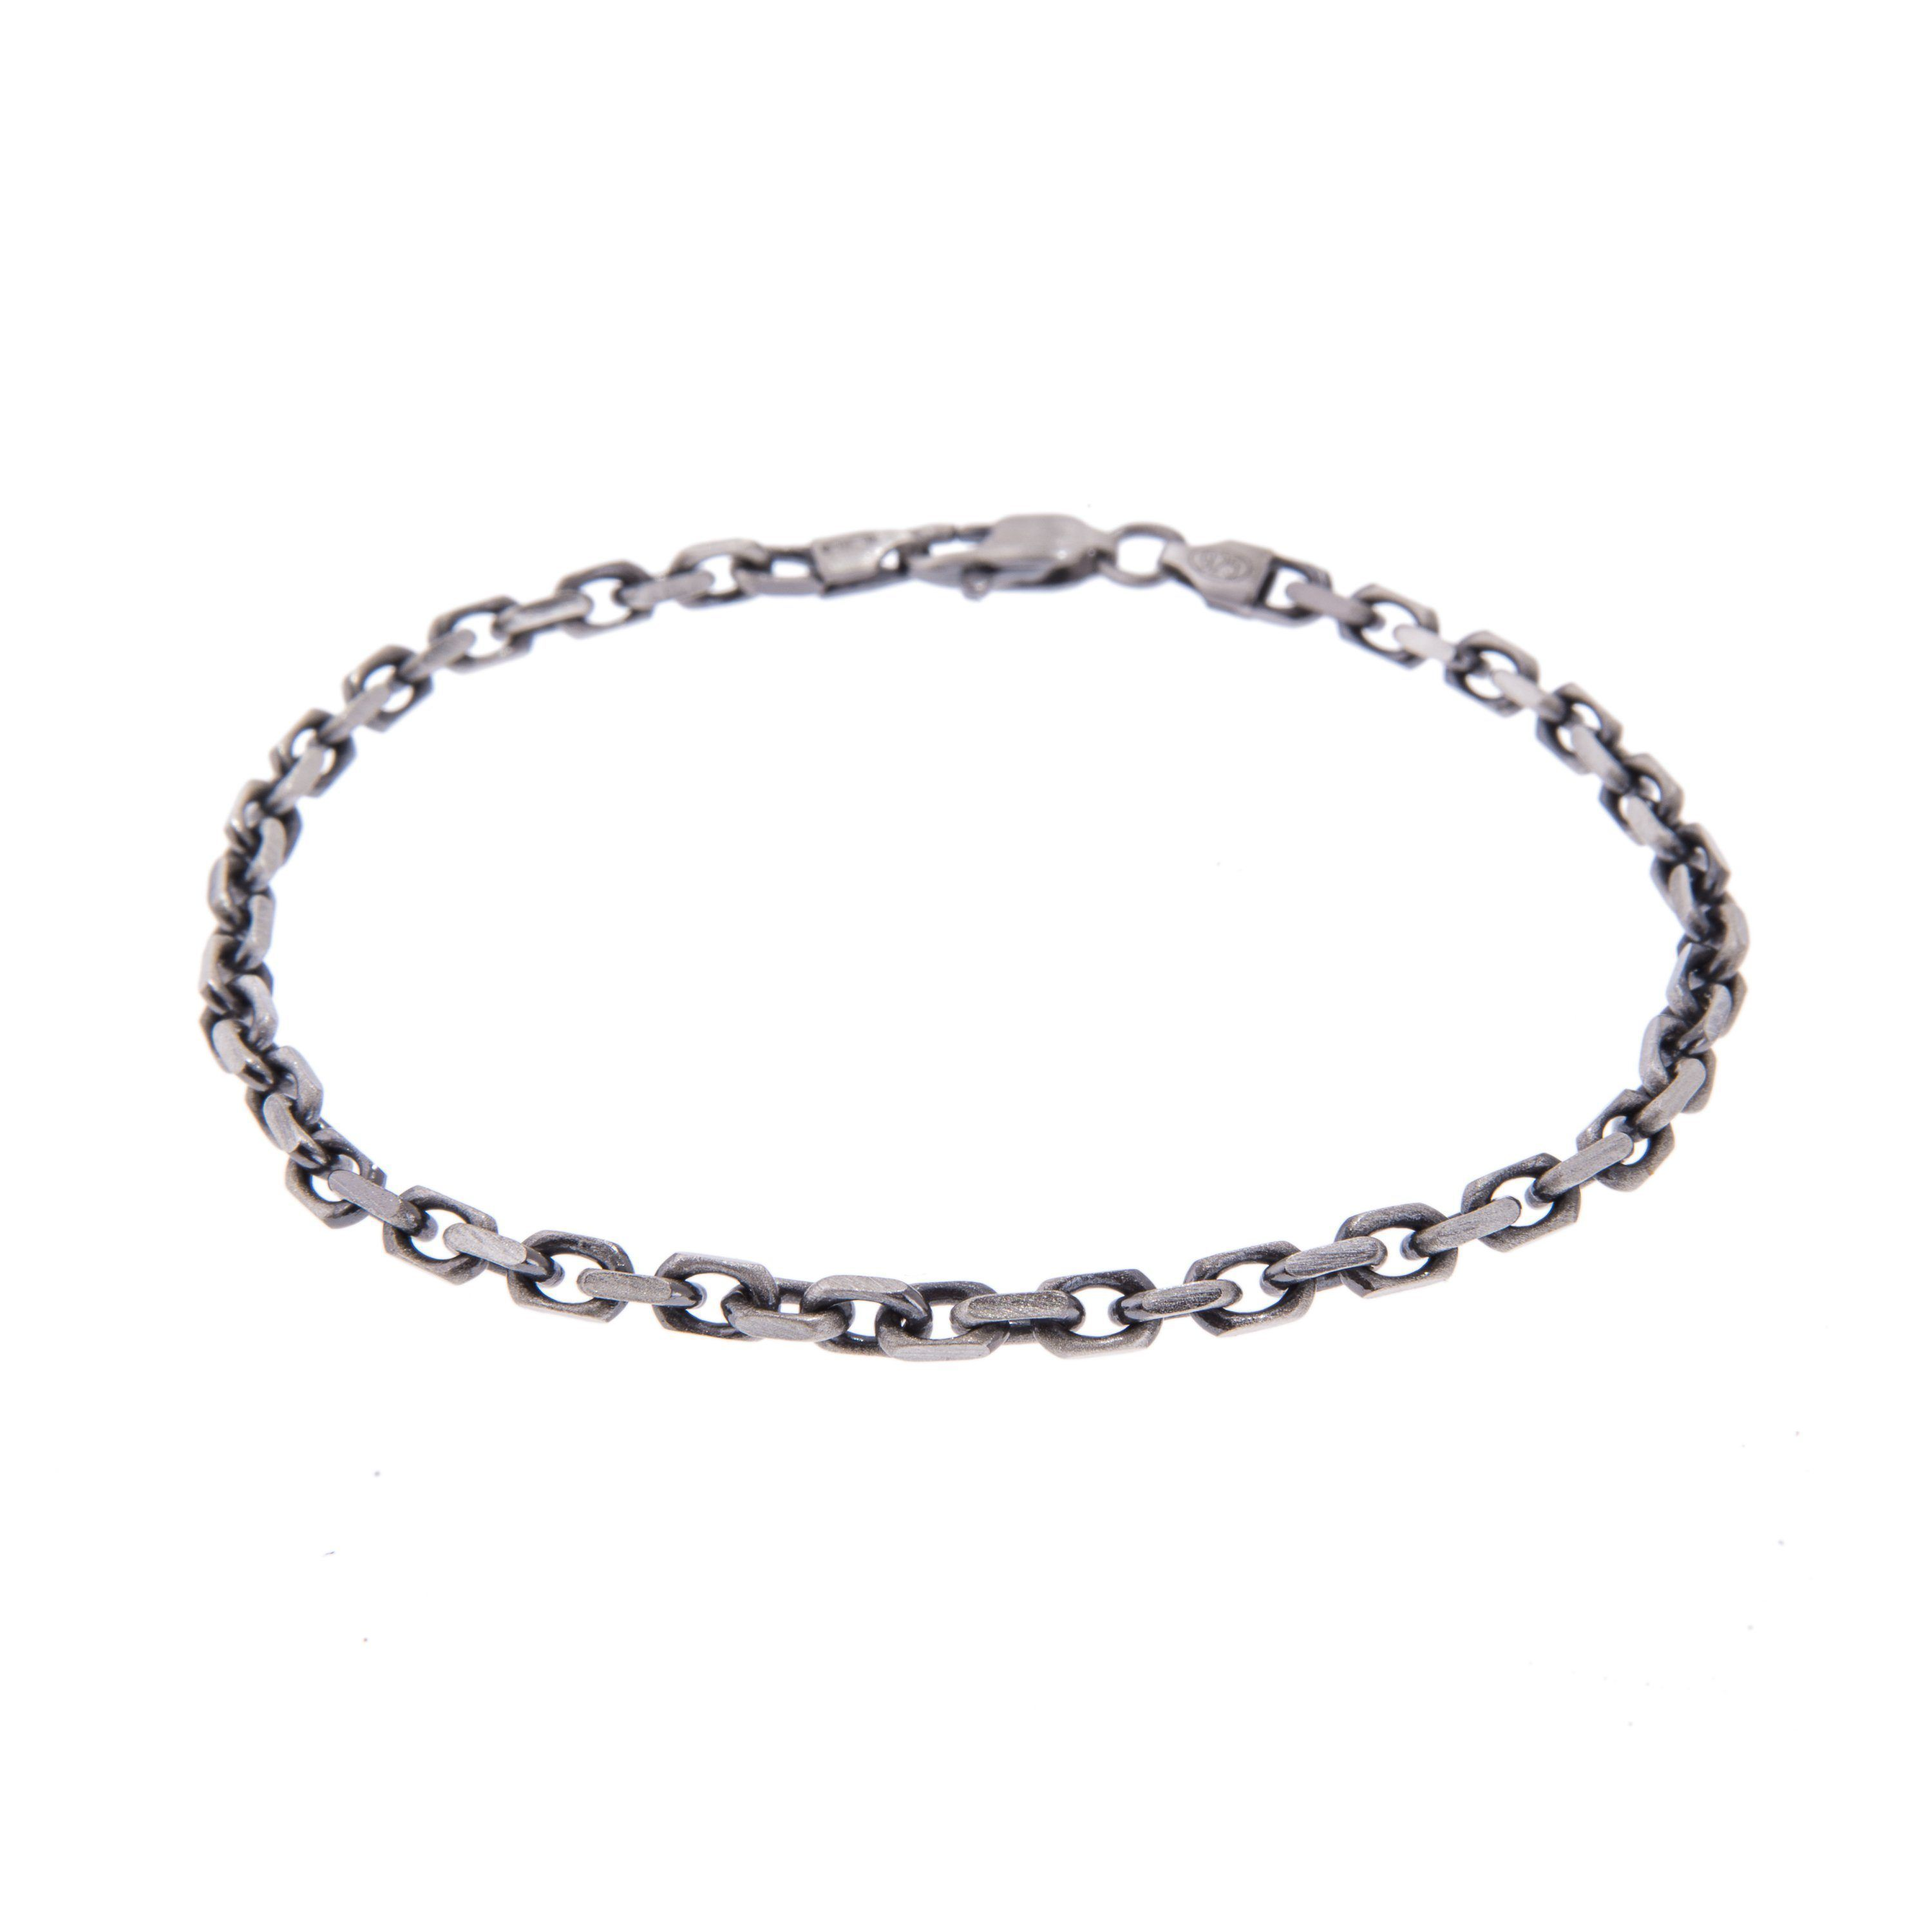 d51b039c28e STERLING SILVER CHAIN BRACELET IN GUNMETAL #accessories #jewellery  #italiandesign #thinkpositivefashioncafe #silver